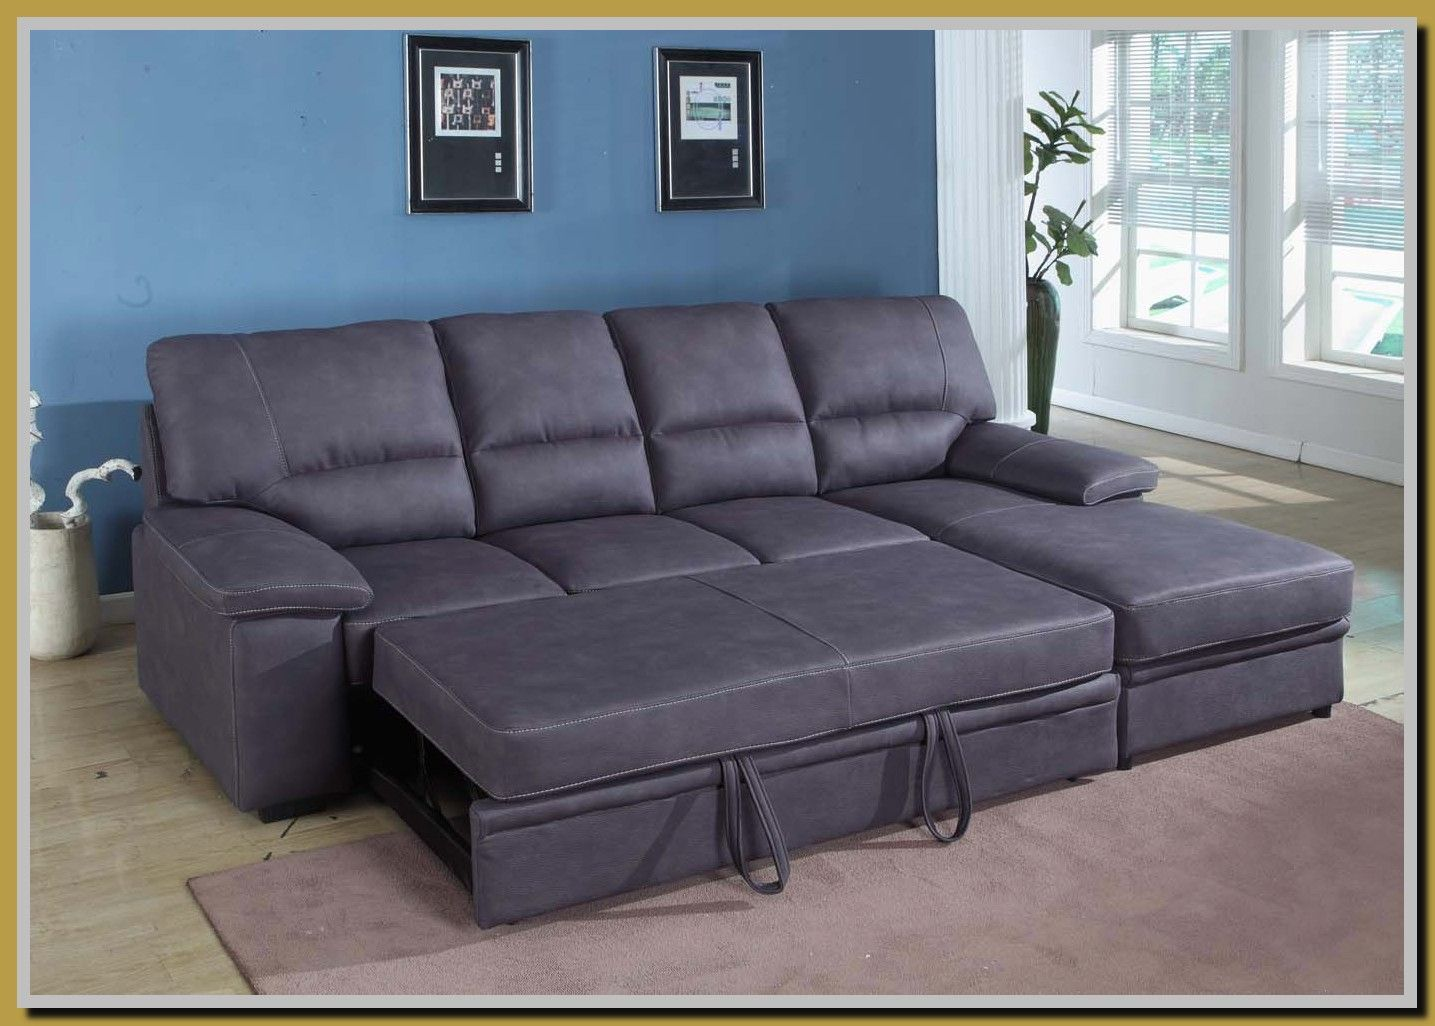 62 Reference Of Sofa Sectional Sleeper Sale In 2020 Sectional Sofa With Chaise Grey Sectional Sofa Small Room Sofa Bed